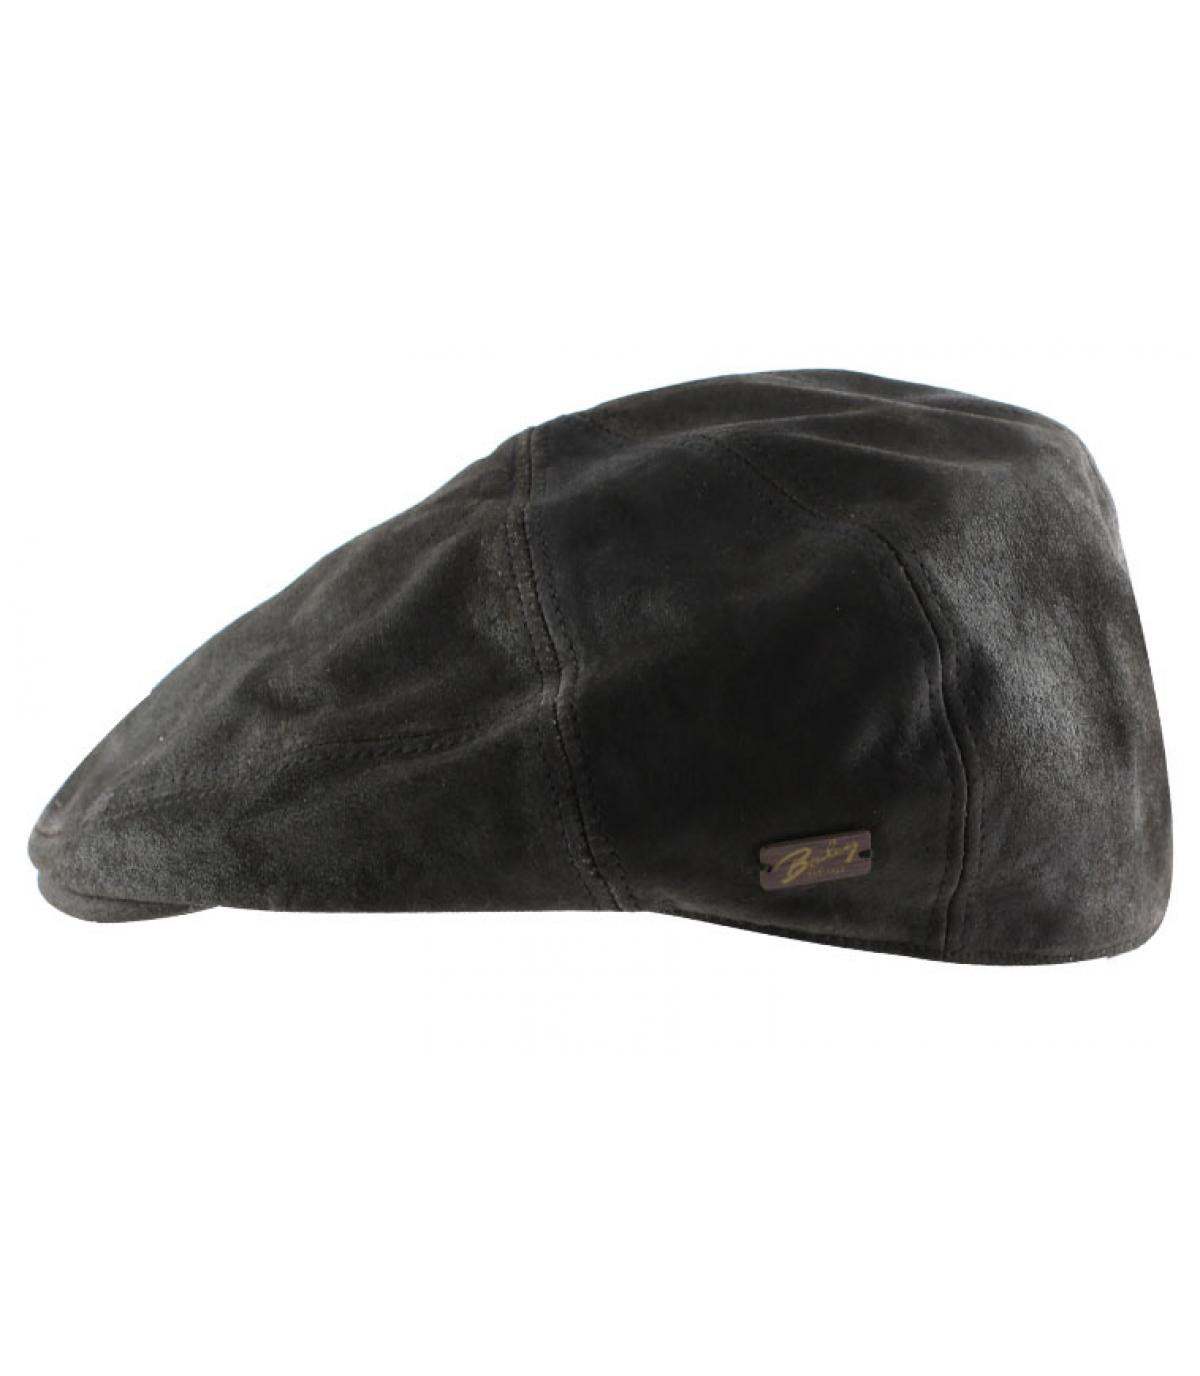 Brown leather flat cap